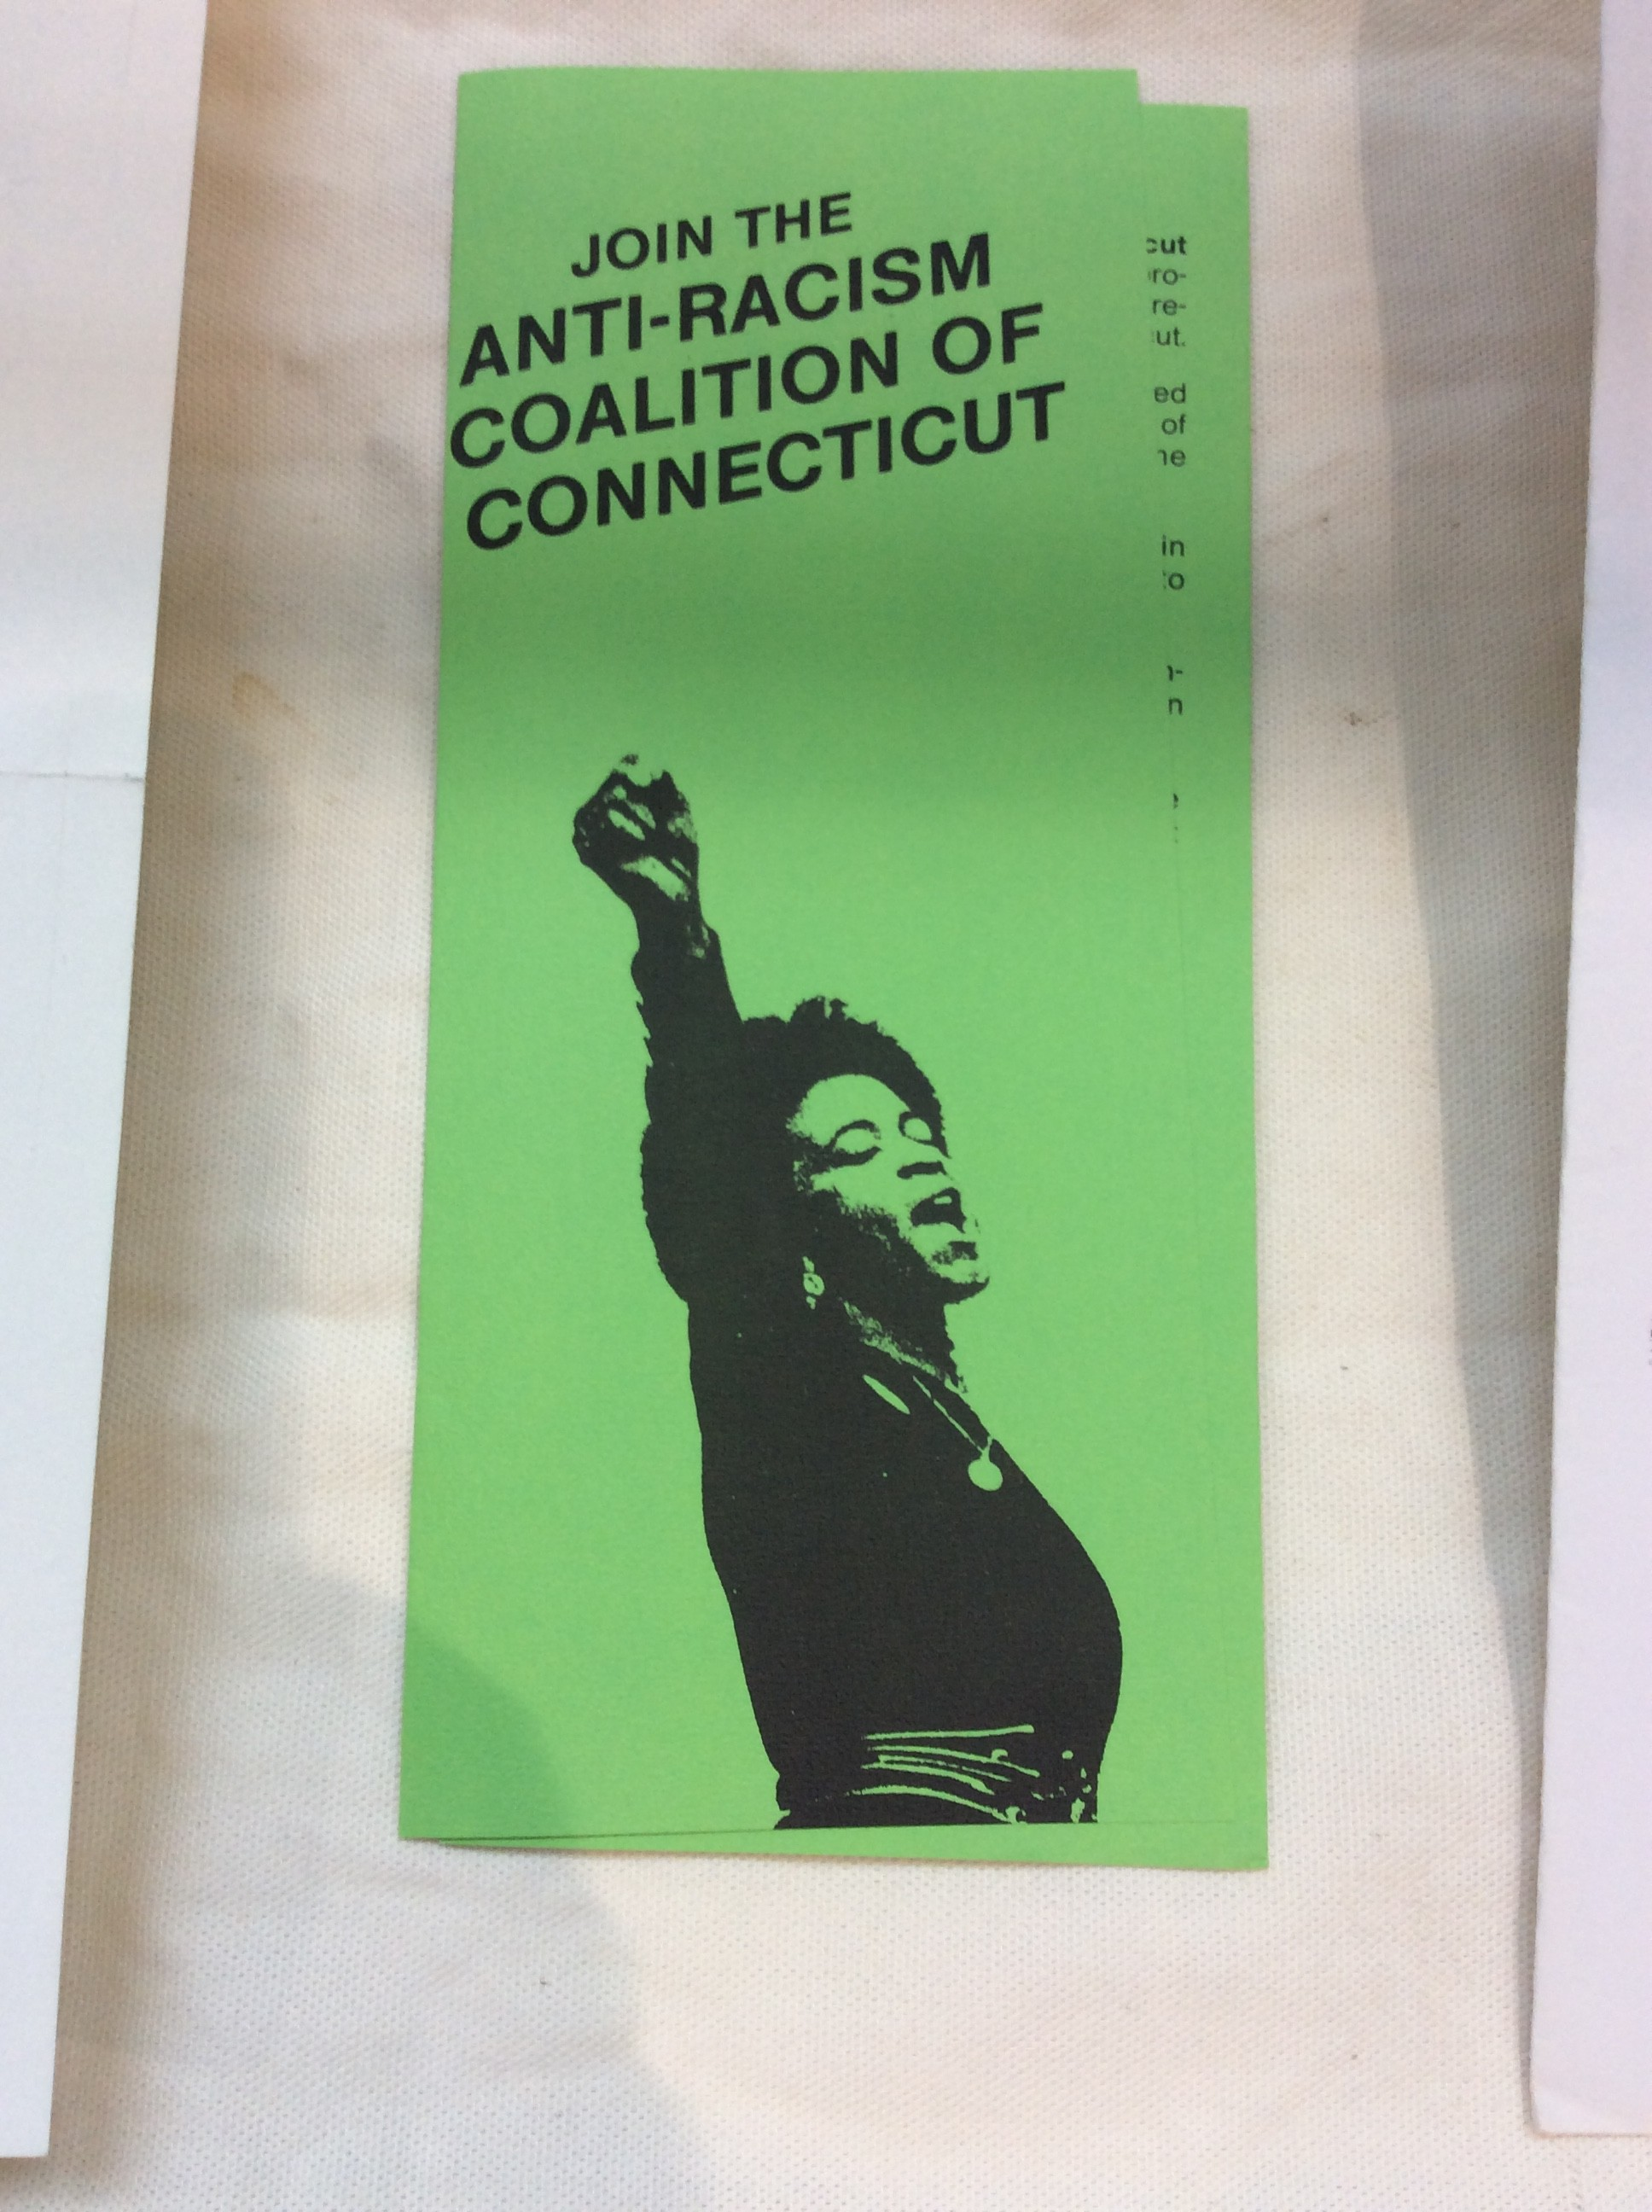 the ku klux klan rebel pride and anti klan resistance archives anti racism coalition of connecticut pamphlet